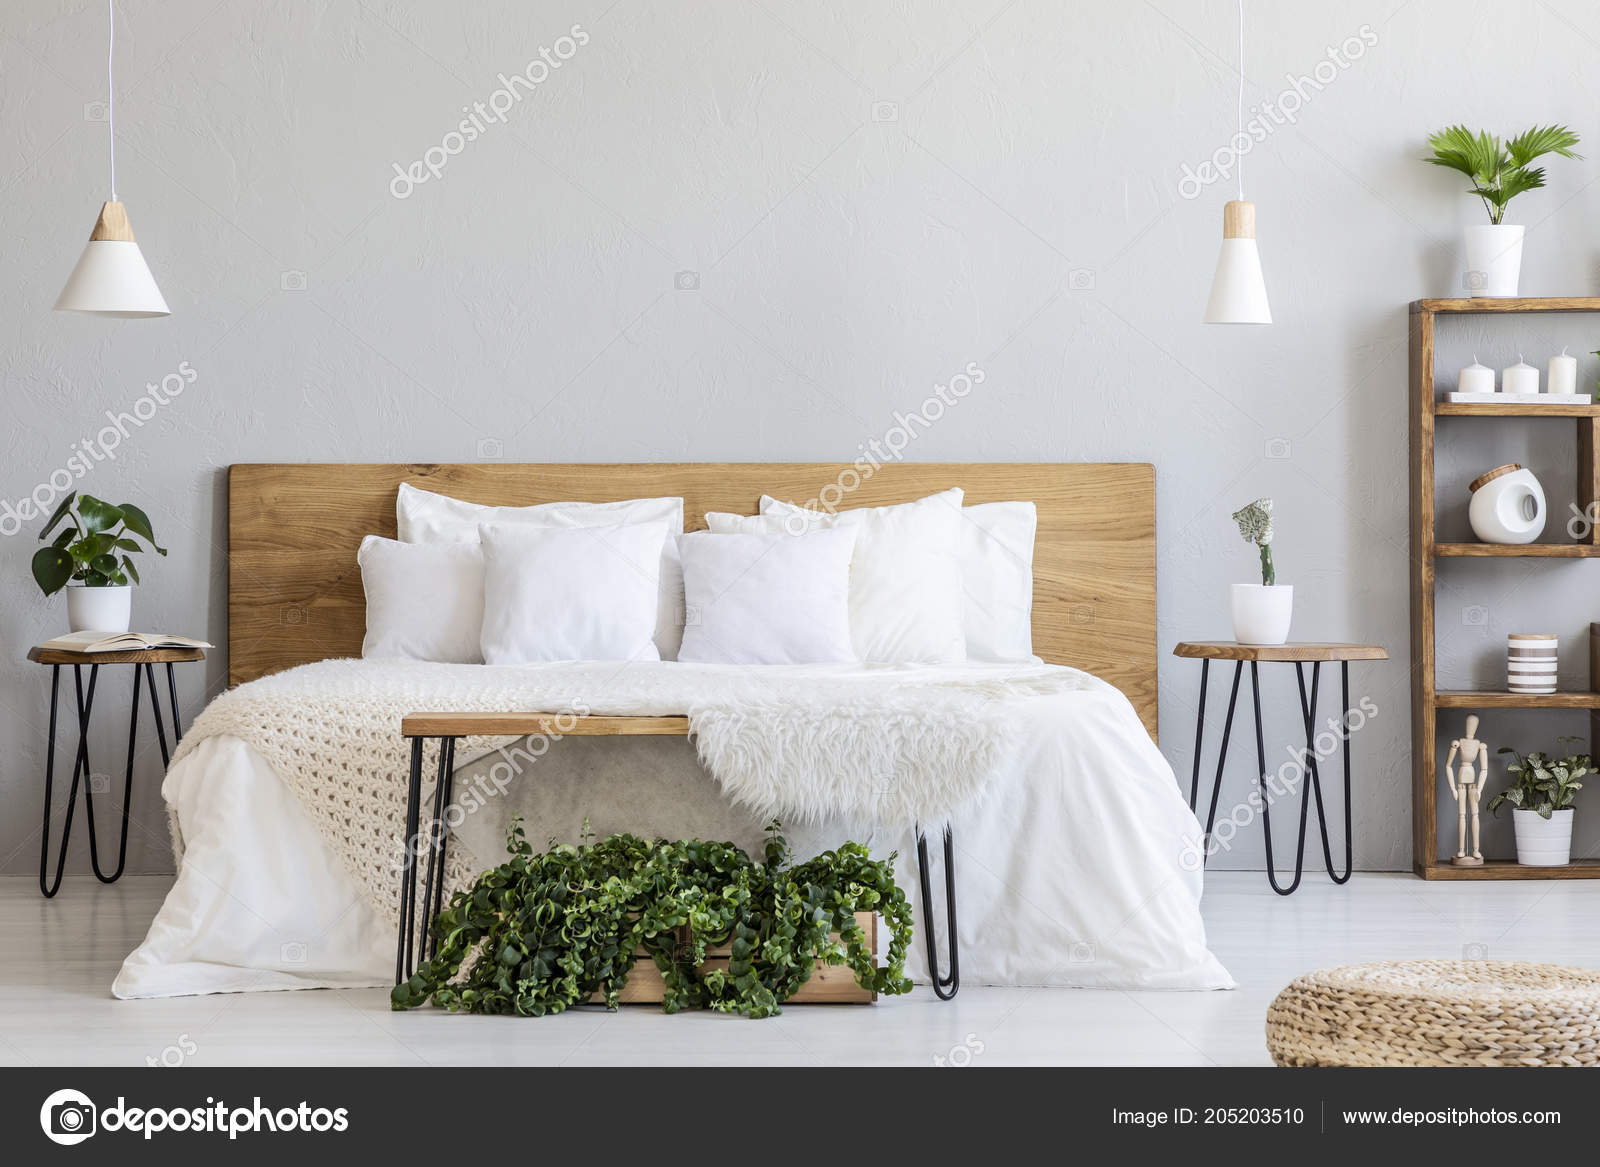 Lamps Wooden Bed White Sheets Grey Bedroom Interior Pouf